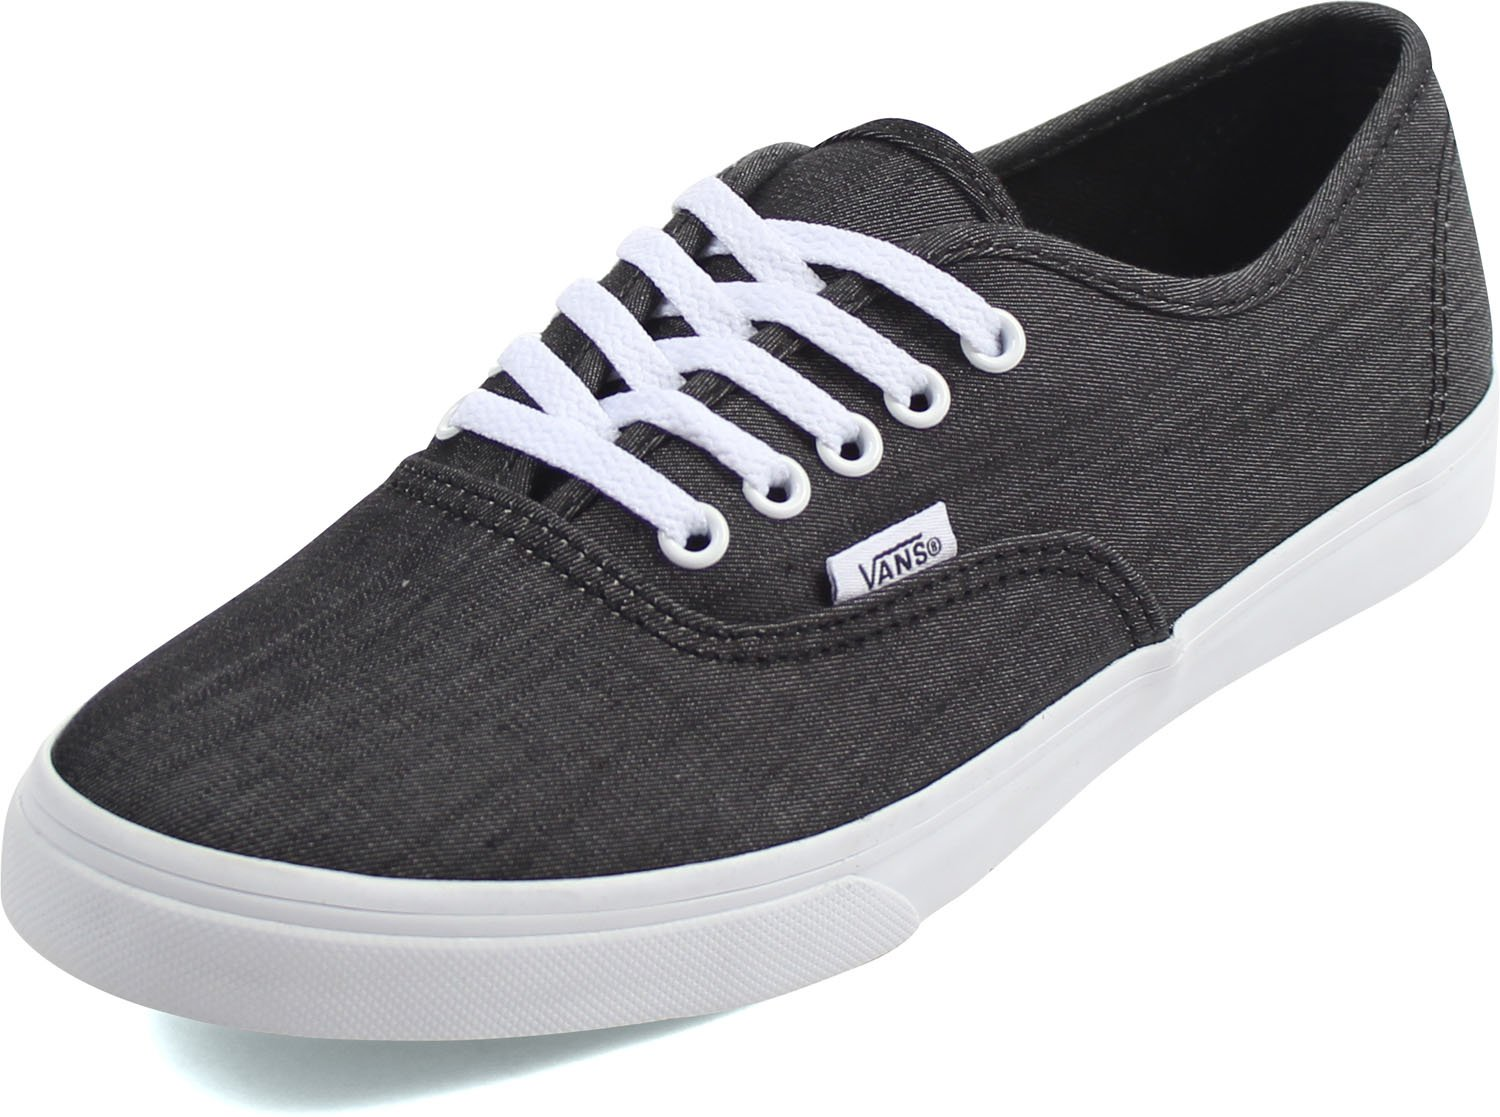 Vans Authentic B01I3Z638Q 7.5?B(M) US Women / 6 D(M) US Men|Shadow Stripe Black/True White